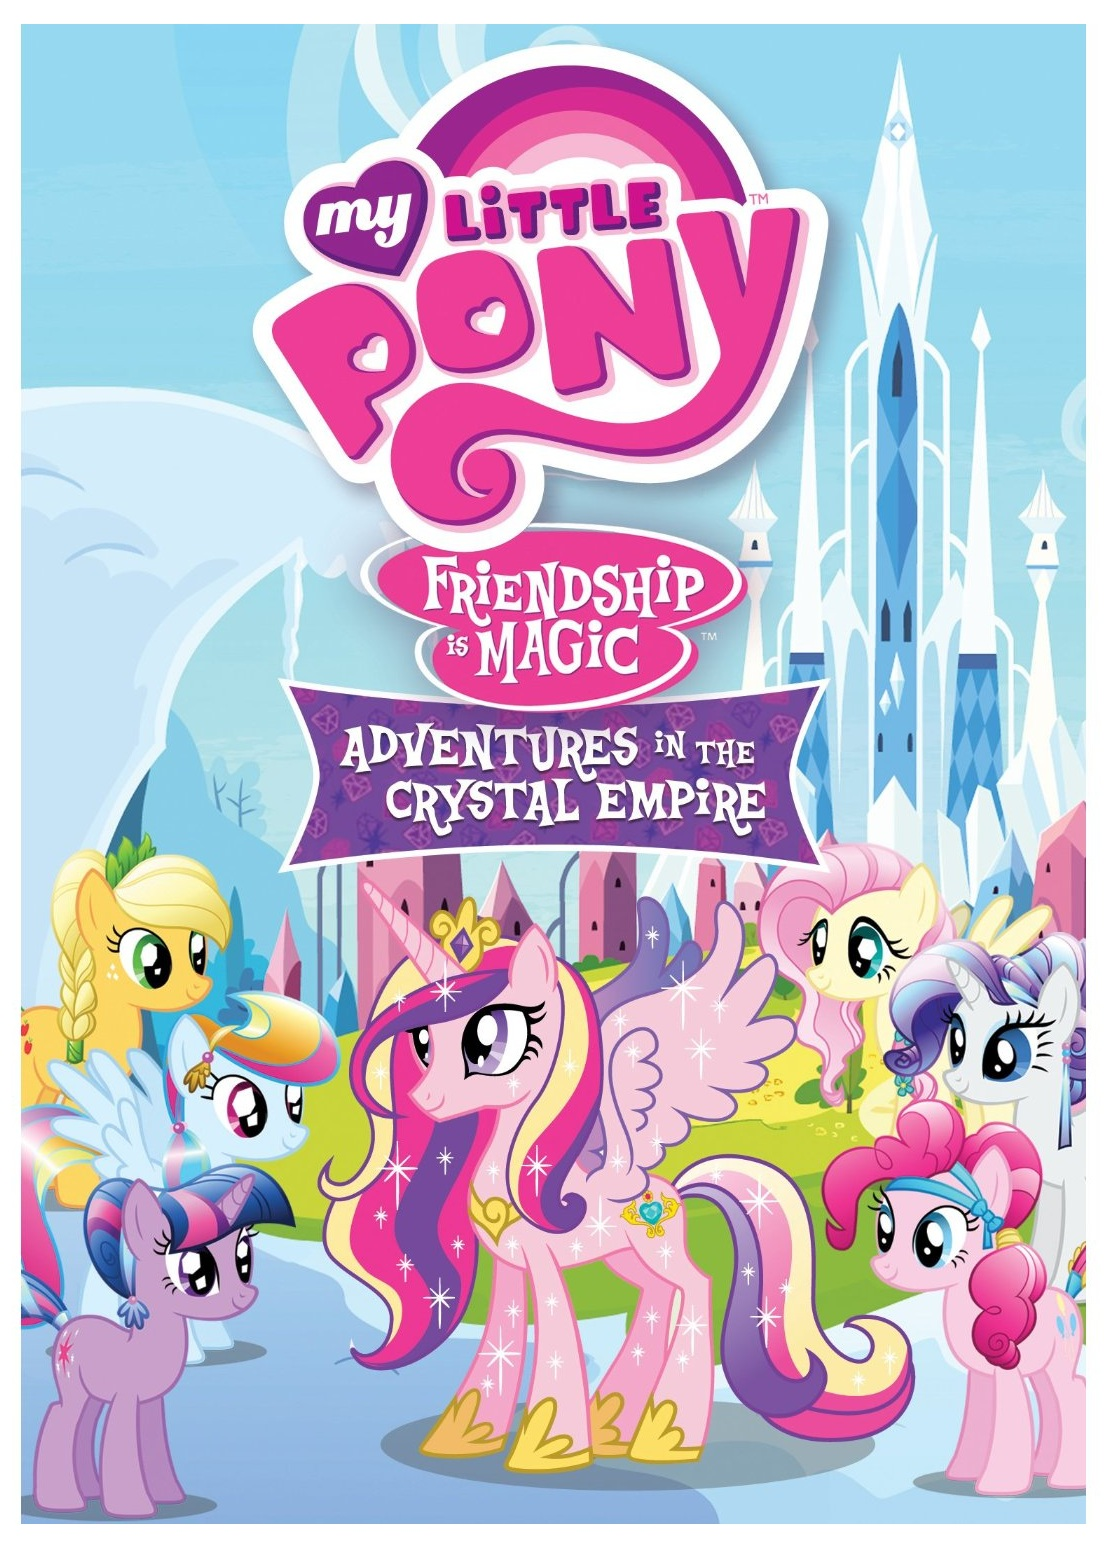 My Little Pony Friendship is Magic DVD